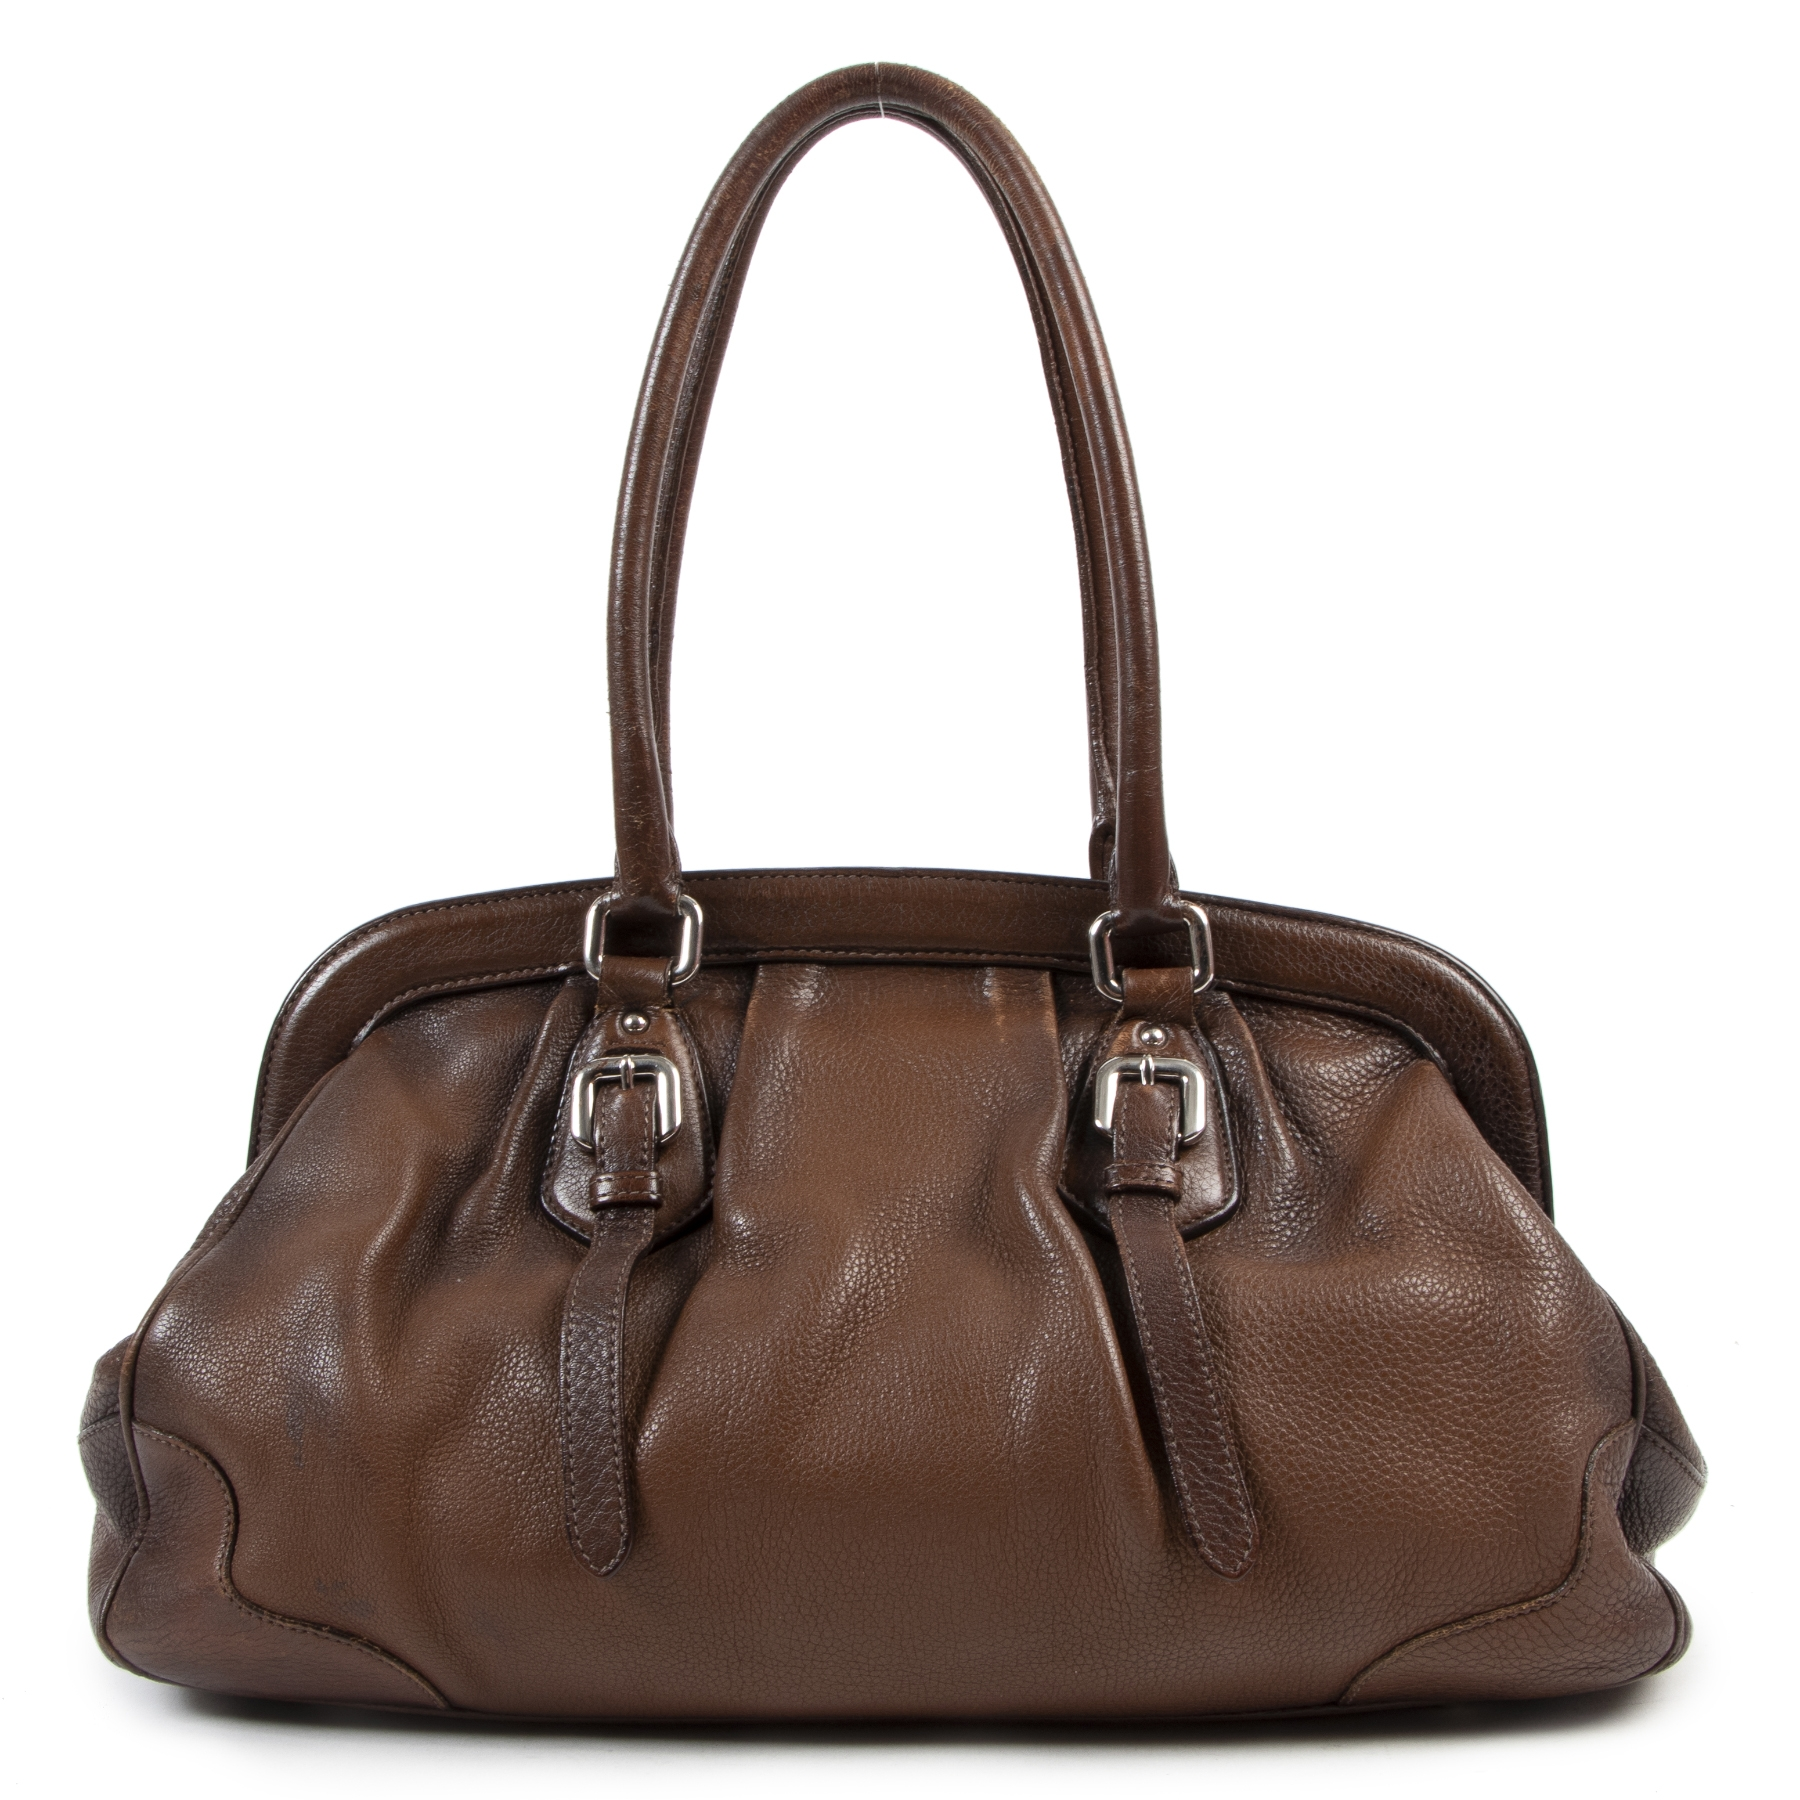 acheteter en linge seconde main Prada Brown Two Tone Leather Frame Bag